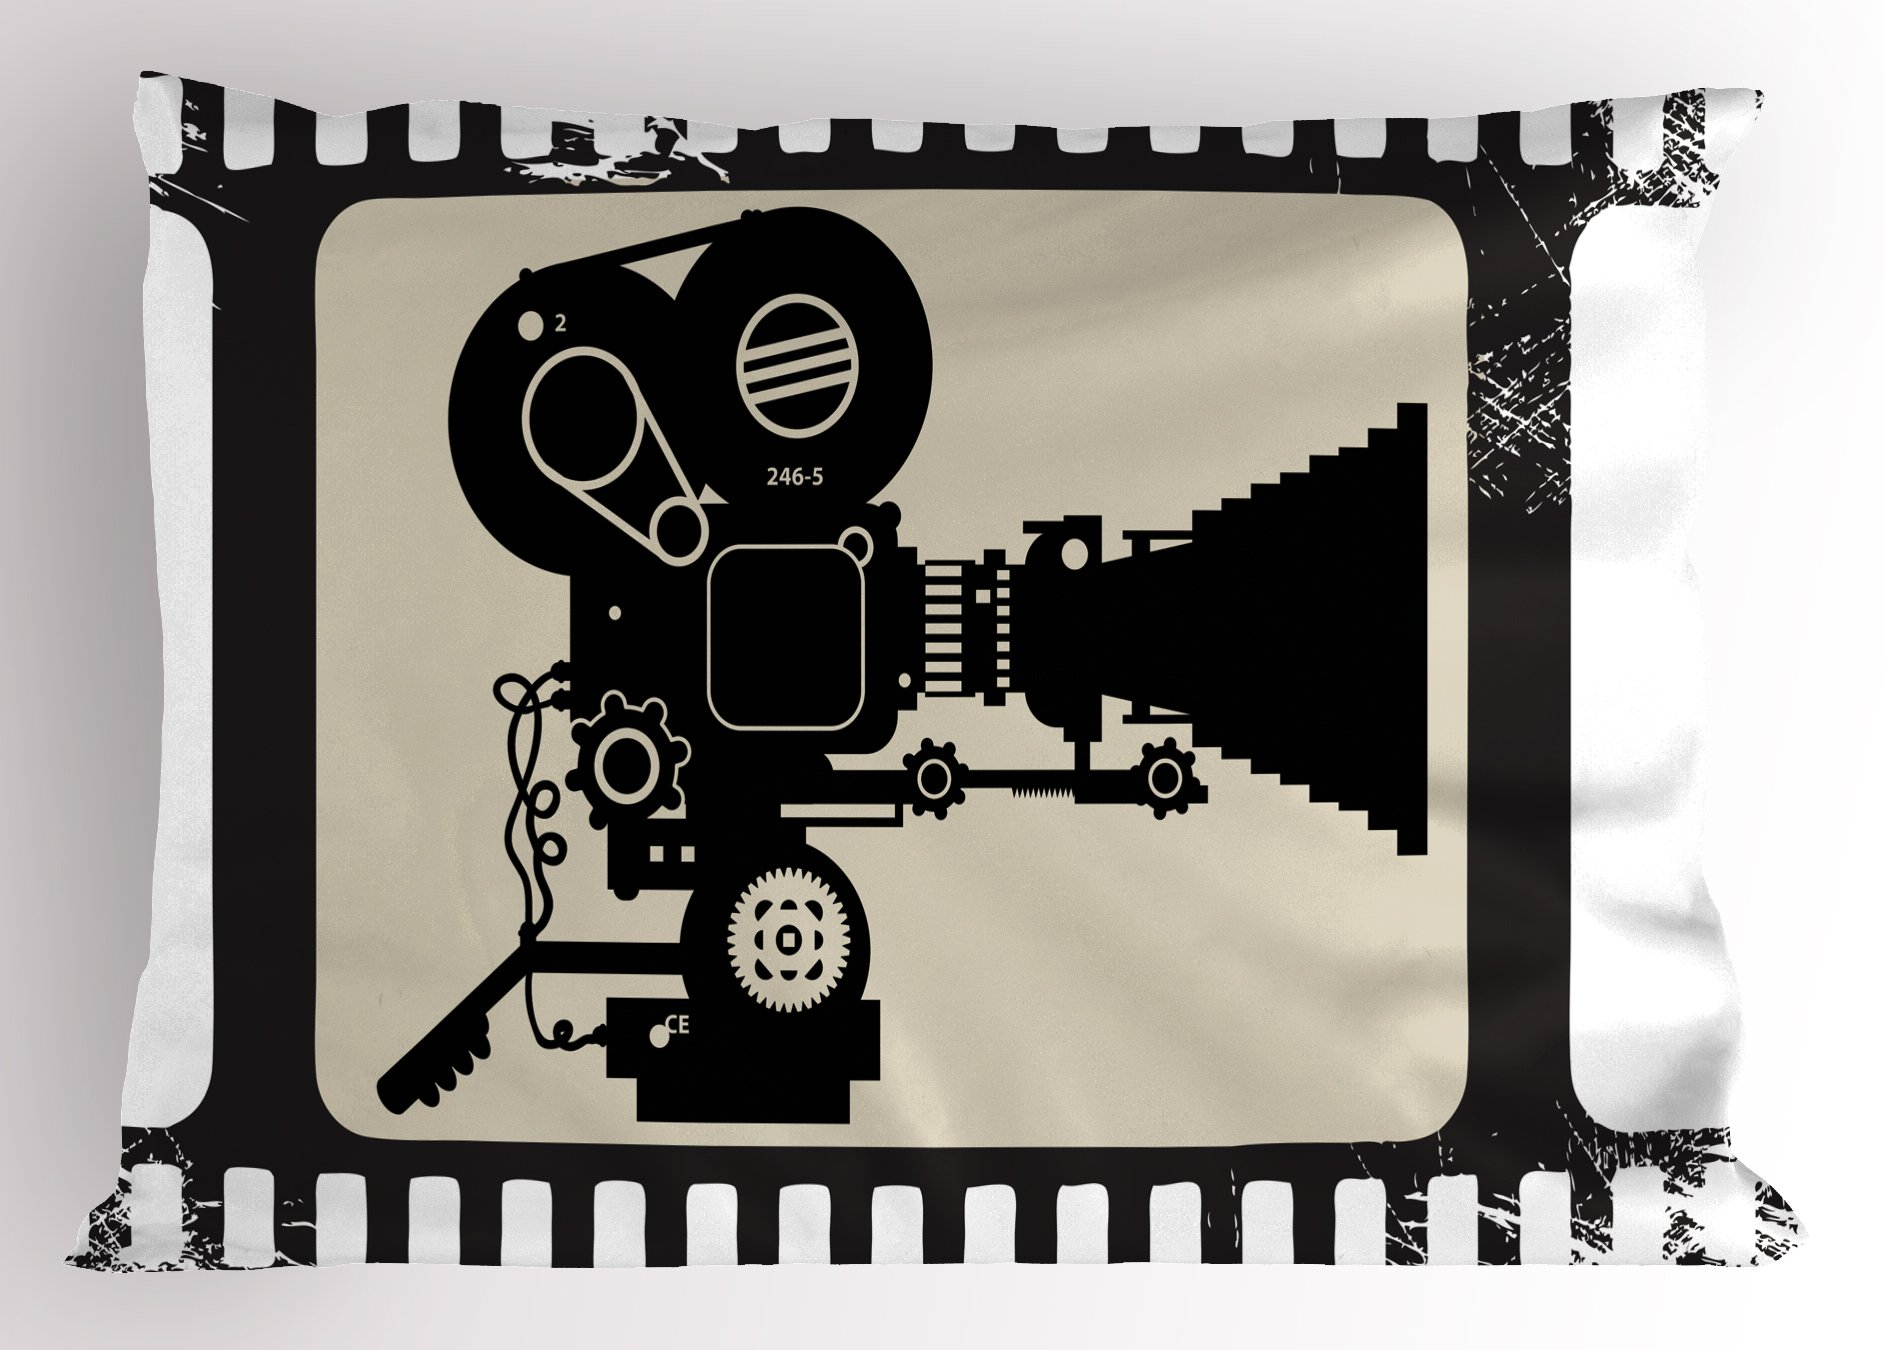 Ambesonne Movie Theater Pillow Sham, Movie Frame Pattern with Silhouette of Movie Reels in a Projector, Decorative Standard Queen Size Printed Pillowcase, 30 X 20 Inches, Dark Taupe Beige Black